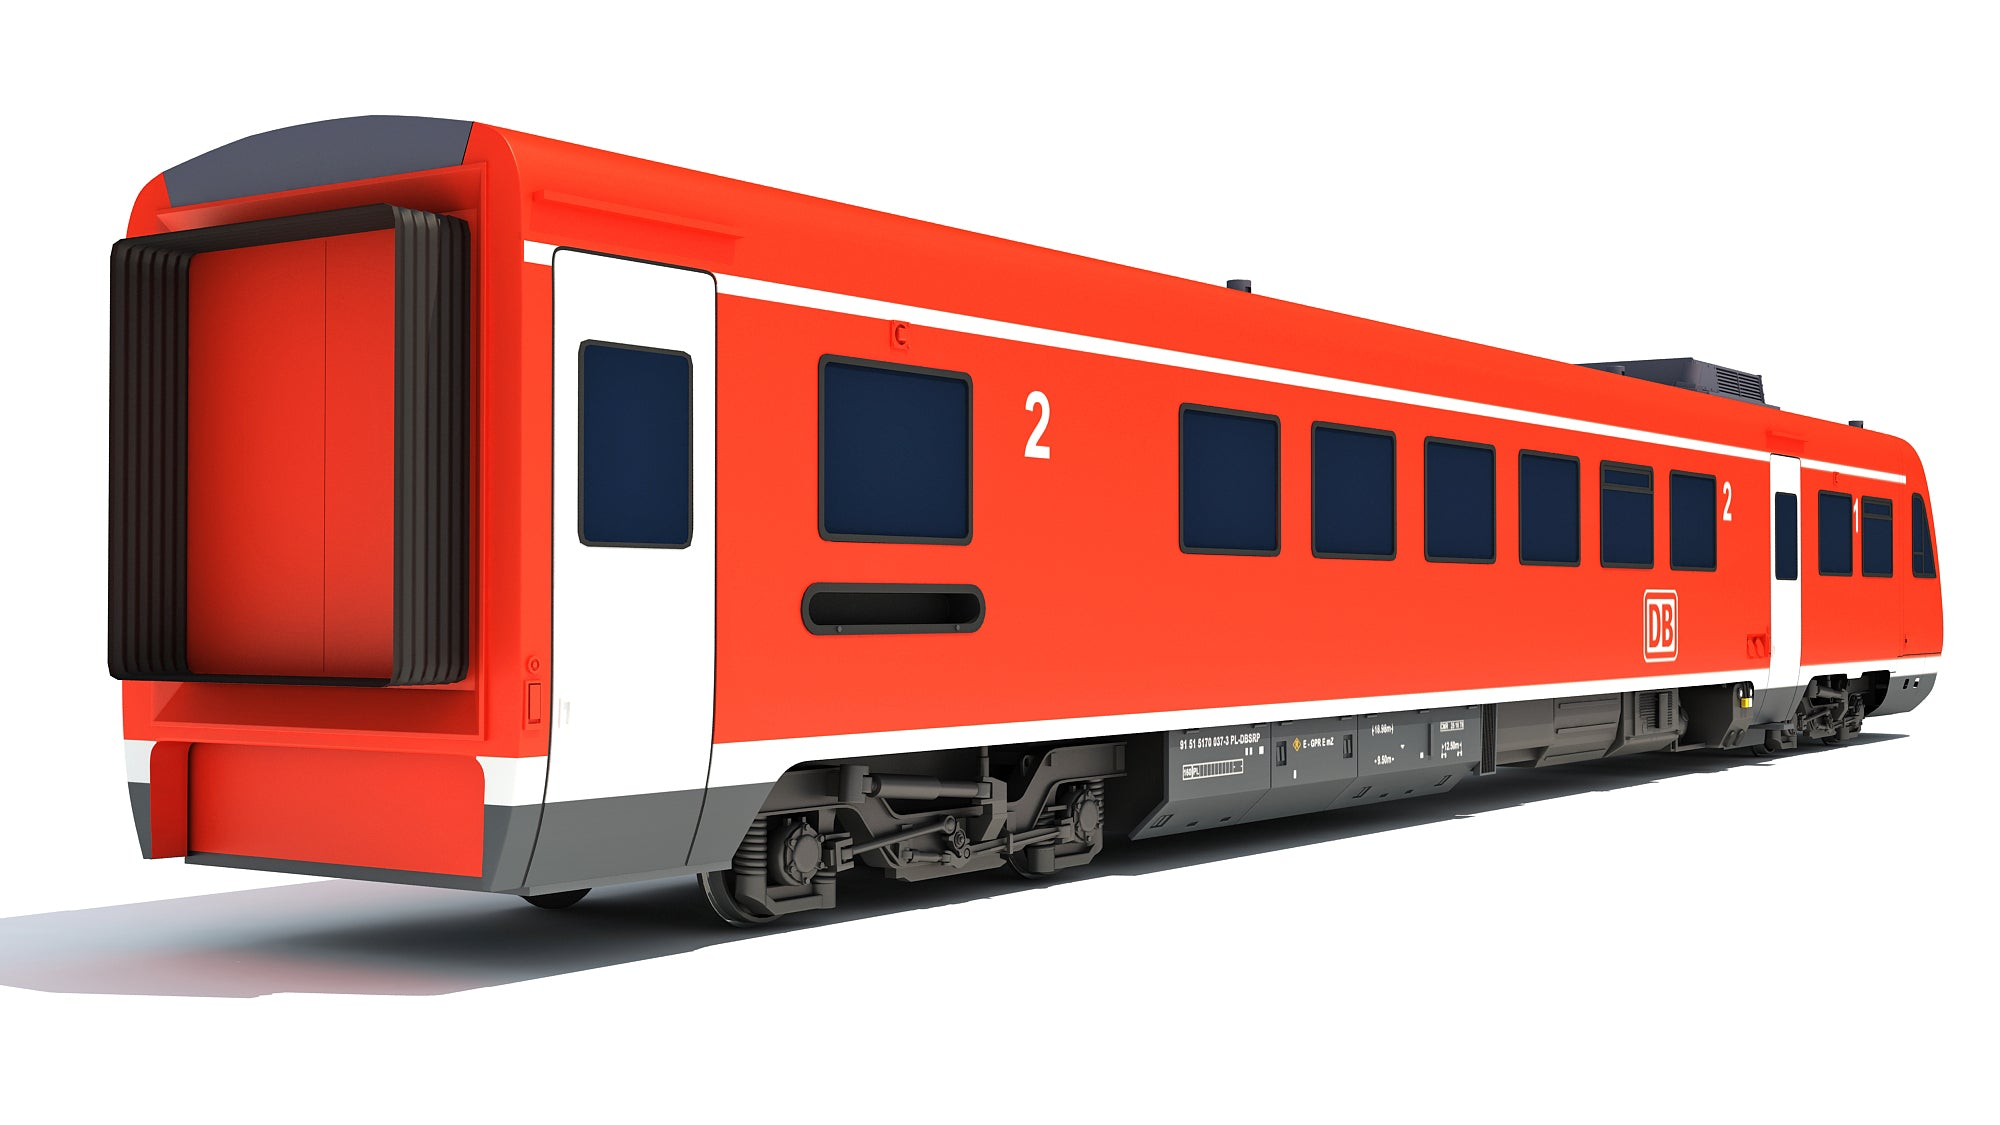 Deutsche Bahn Locomotive Train